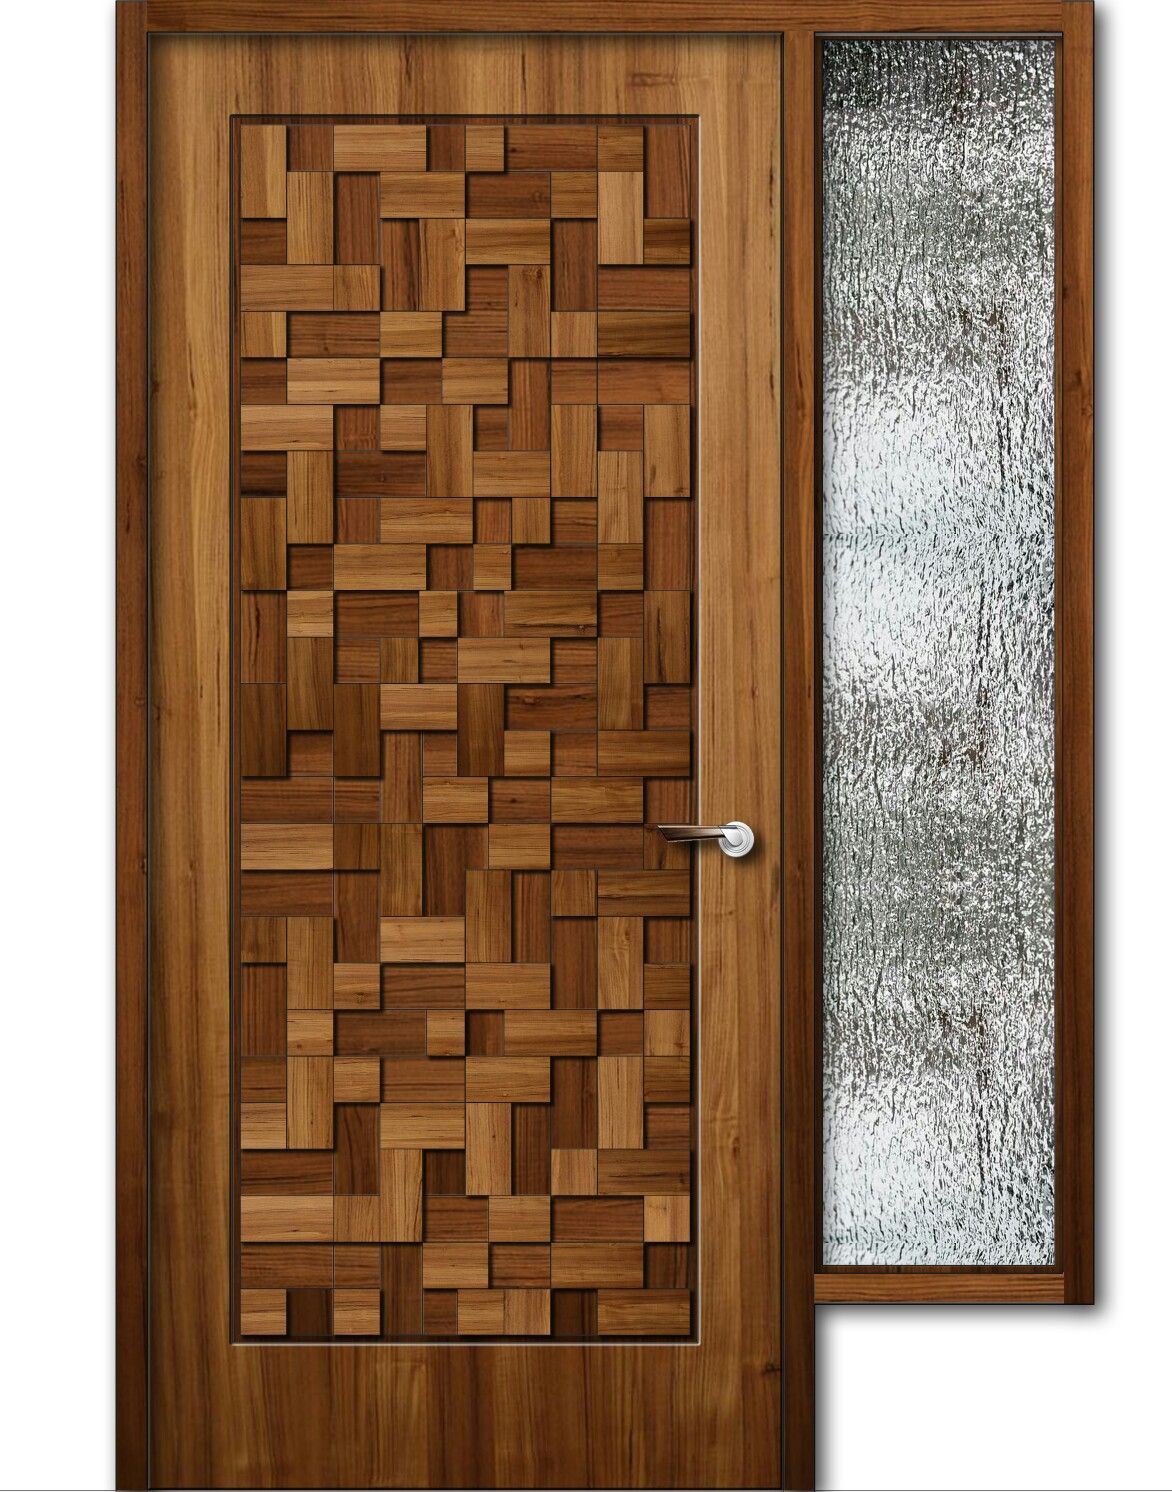 Teak wood finish wooden door with window 8feet height for Wood doors with windows